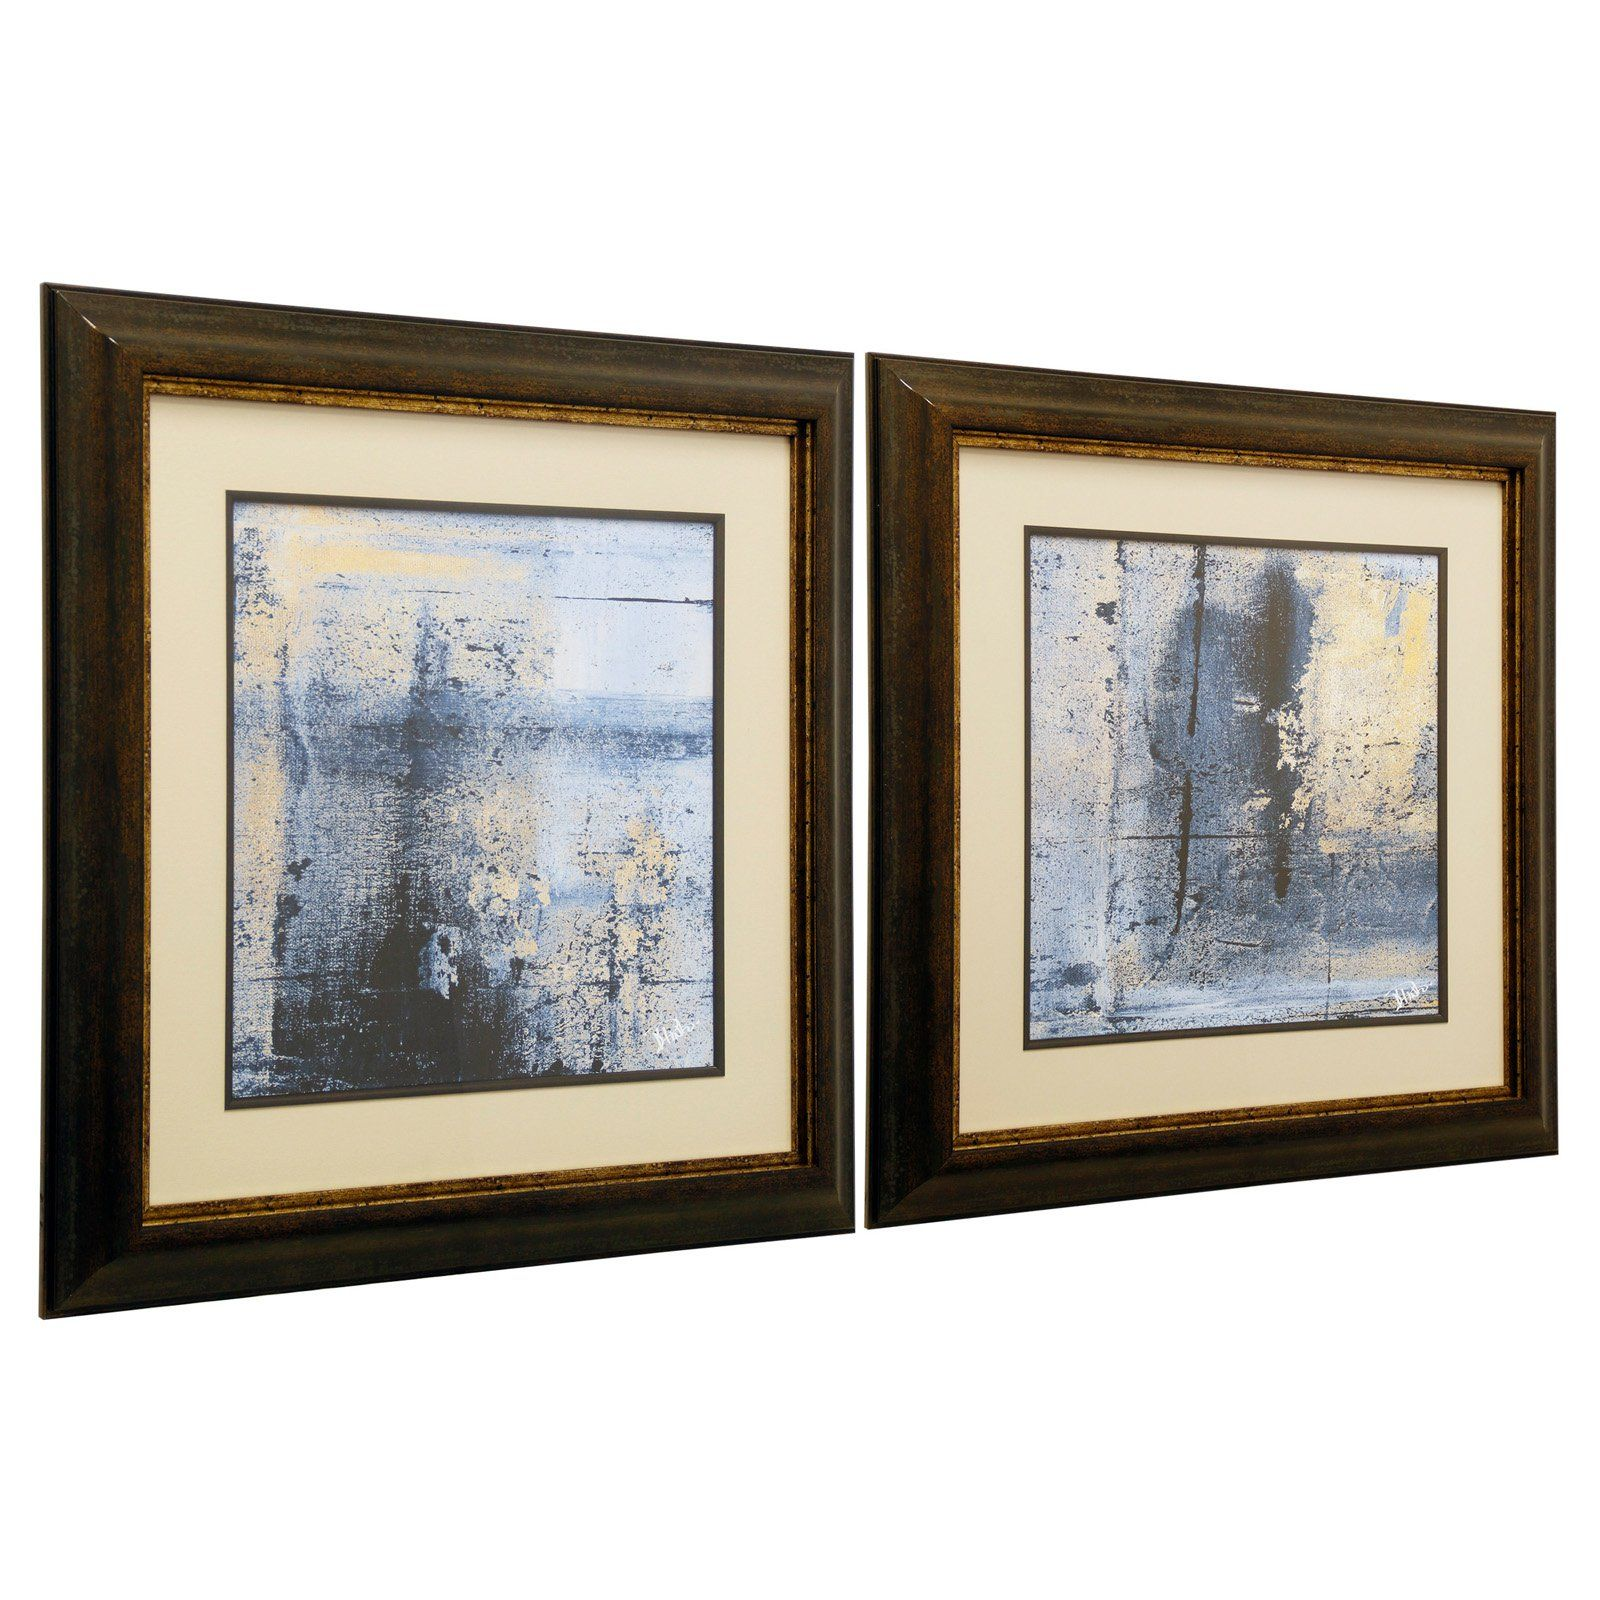 Stylecraft glass framed wall art set of 2 products in